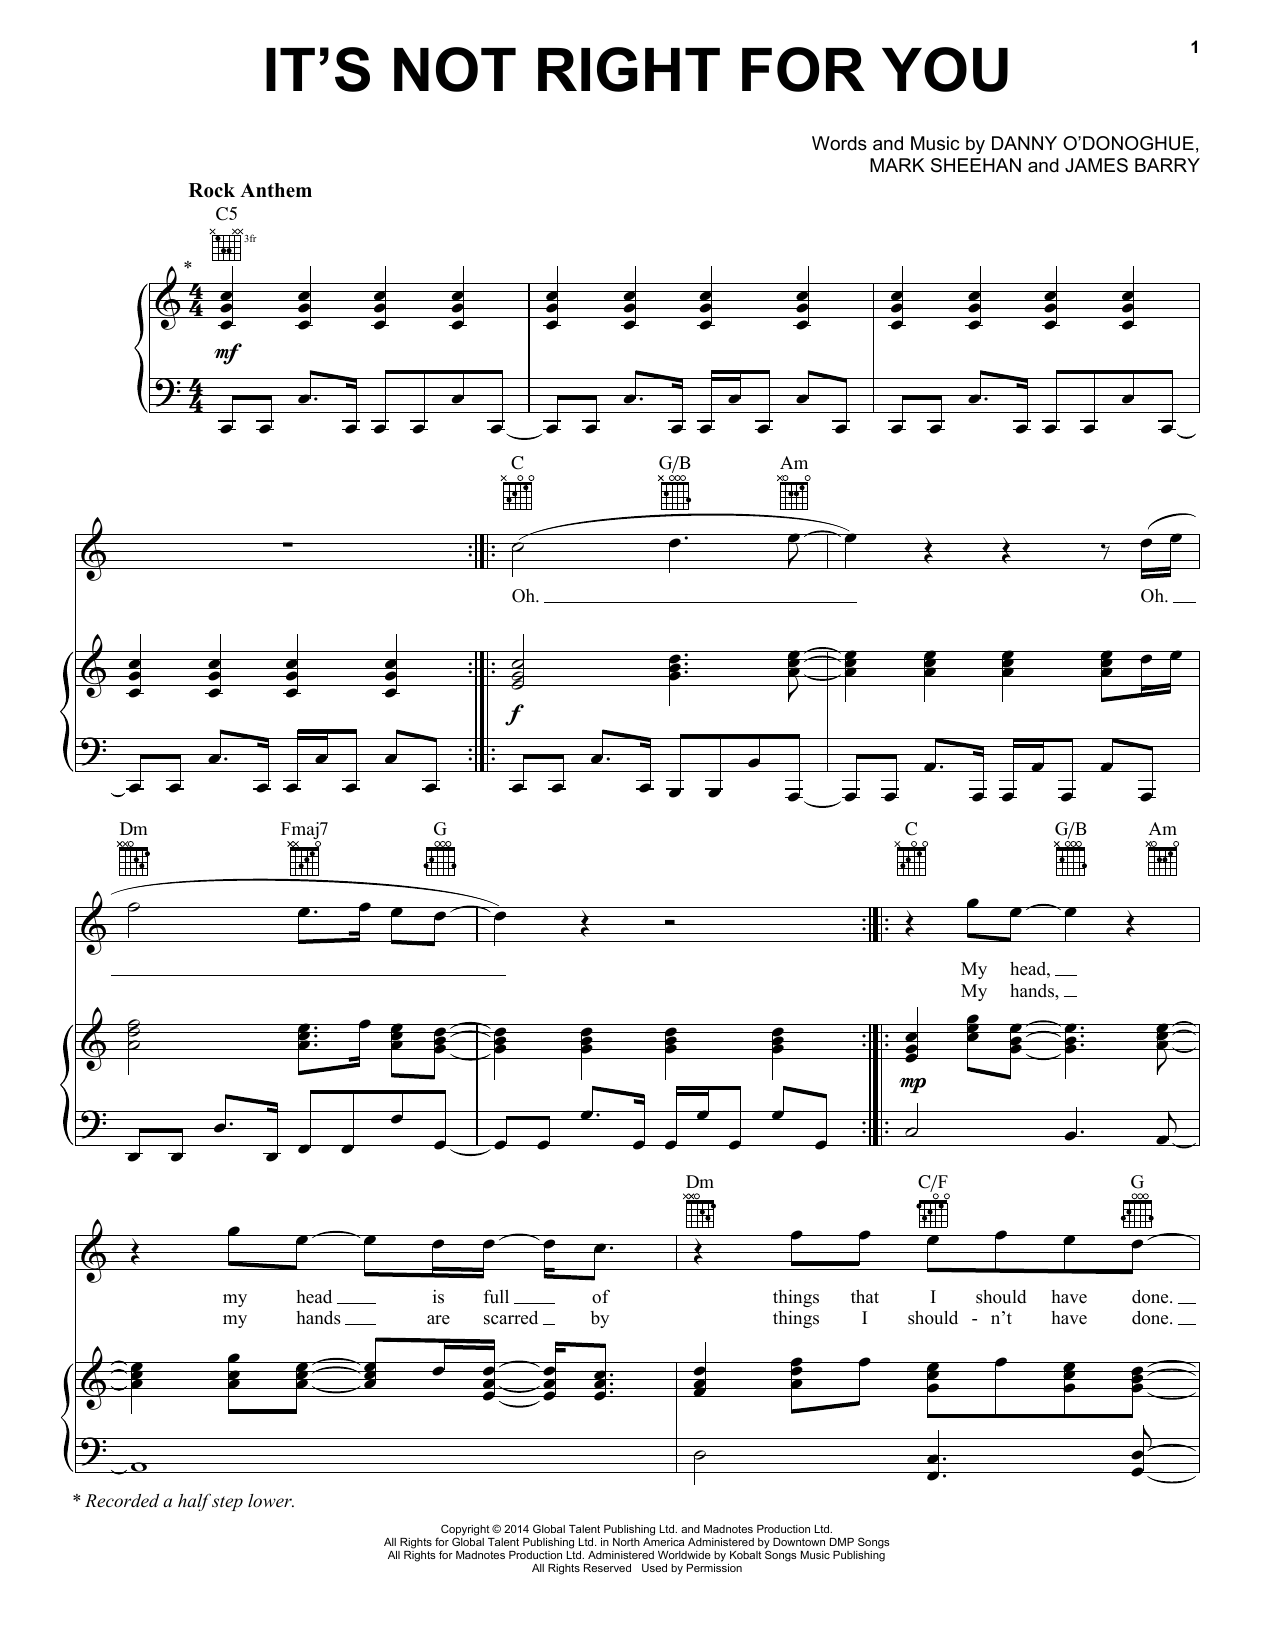 Sheet music digital files to print licensed james barry digital sheet music digital files to print licensed james barry digital sheet music hexwebz Gallery